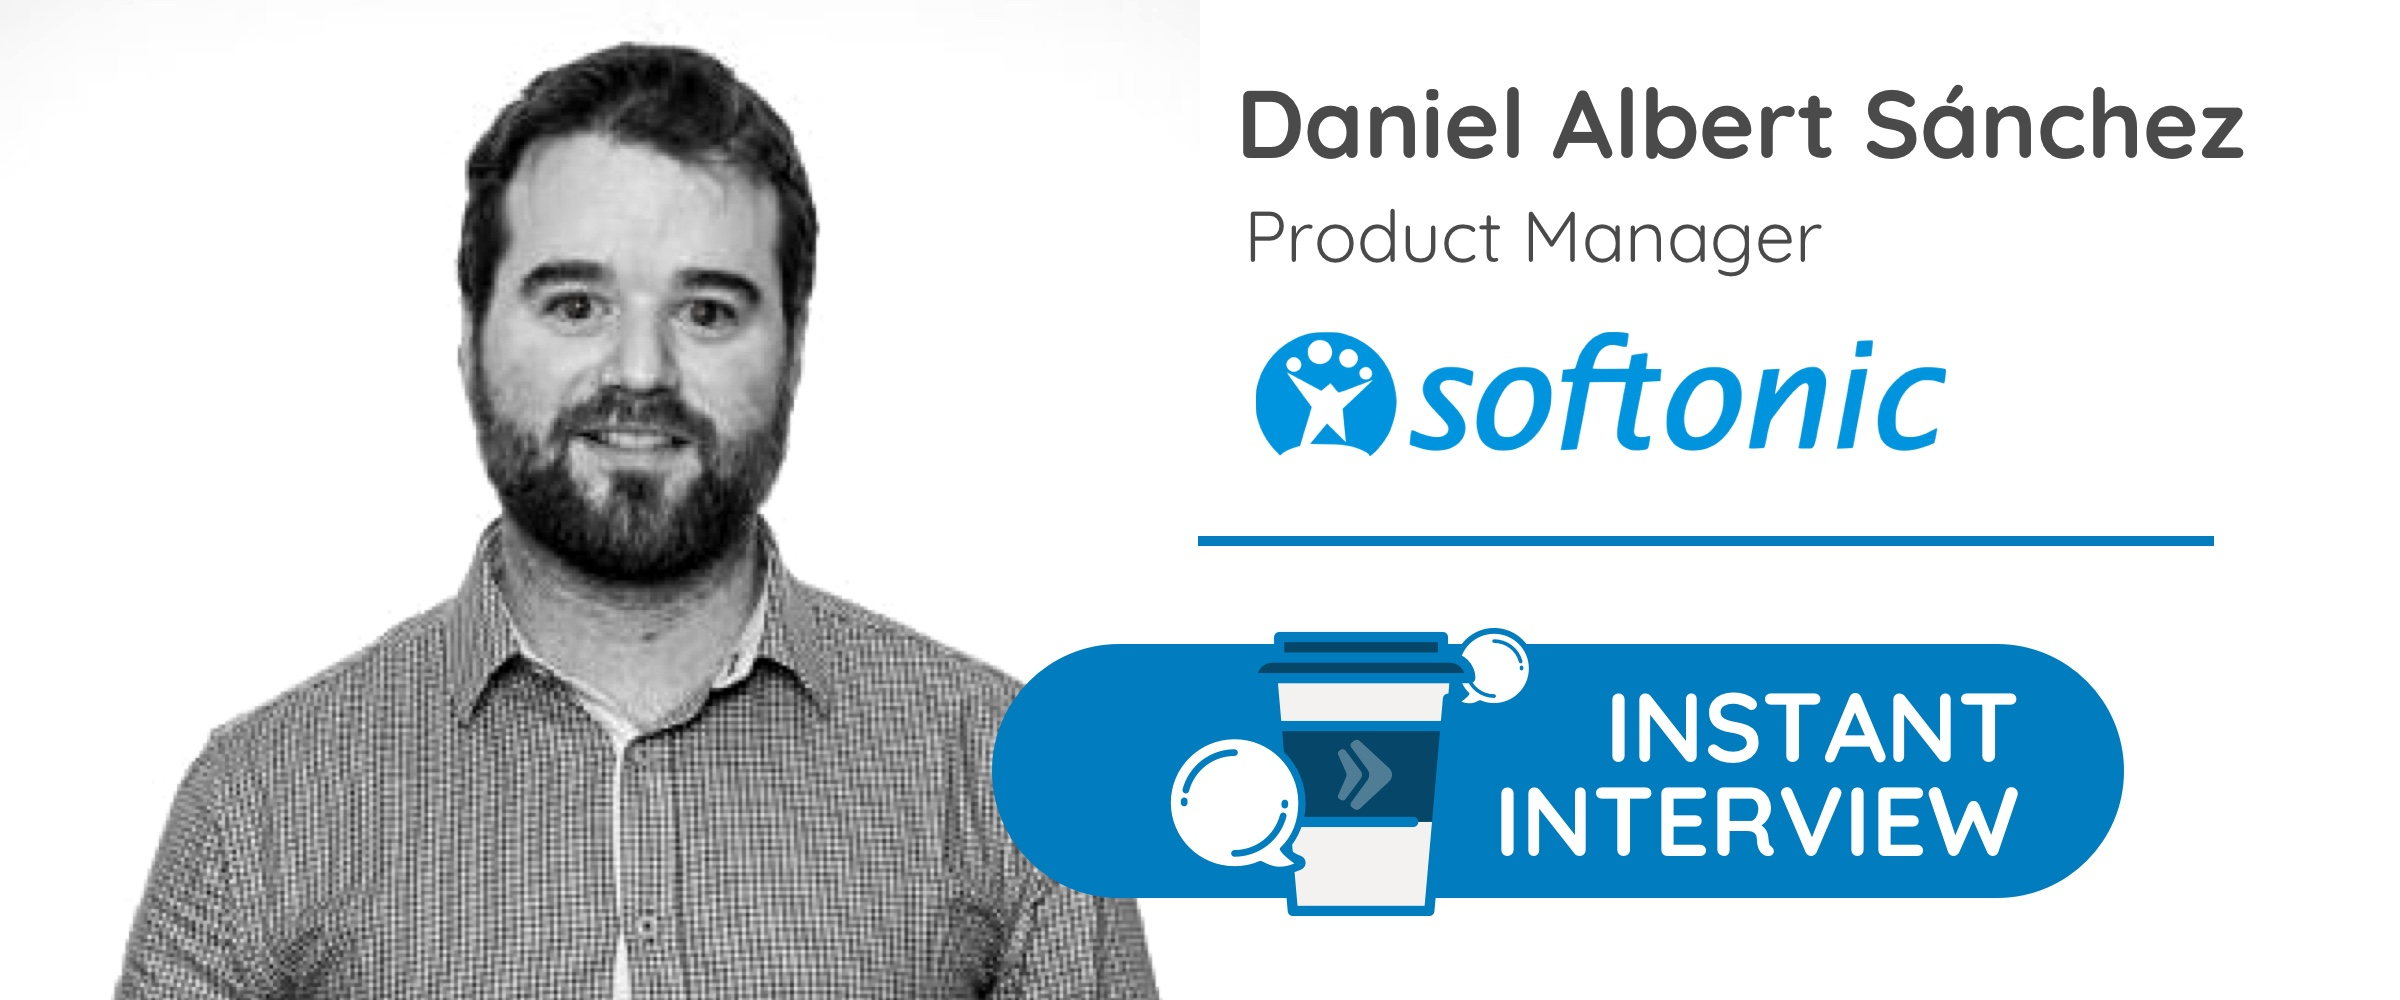 Daniel Albert Sanchez_ Instantcredit _instantinterview Copy